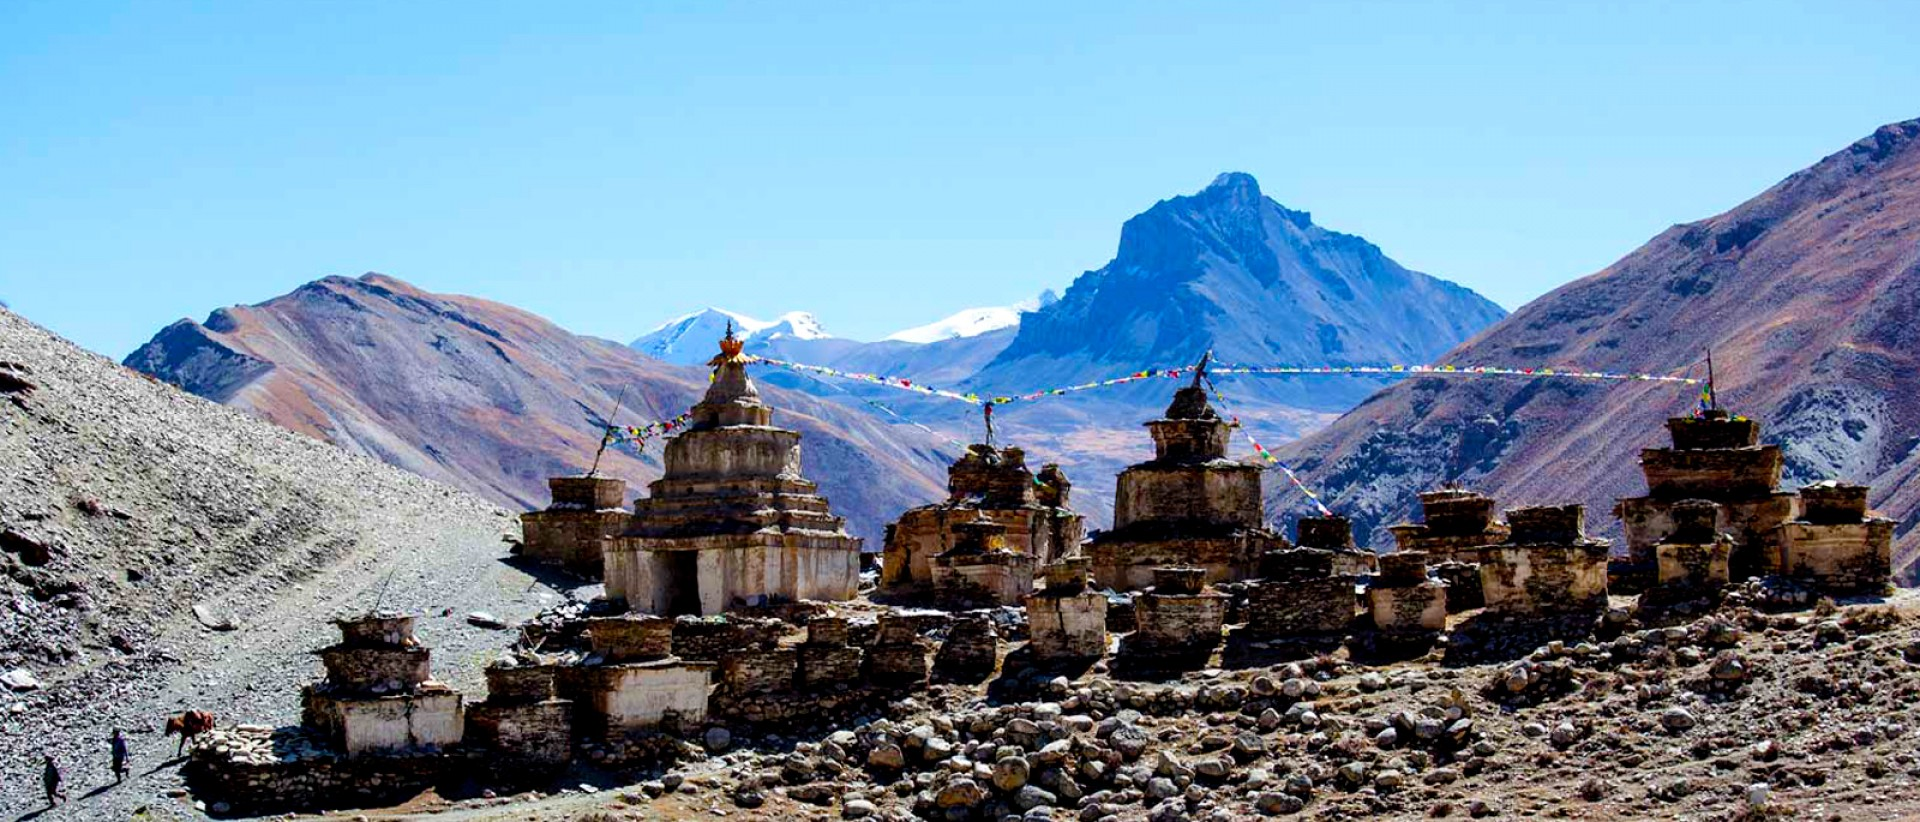 Upper Mustang - Hidden Kingdom of Nepal